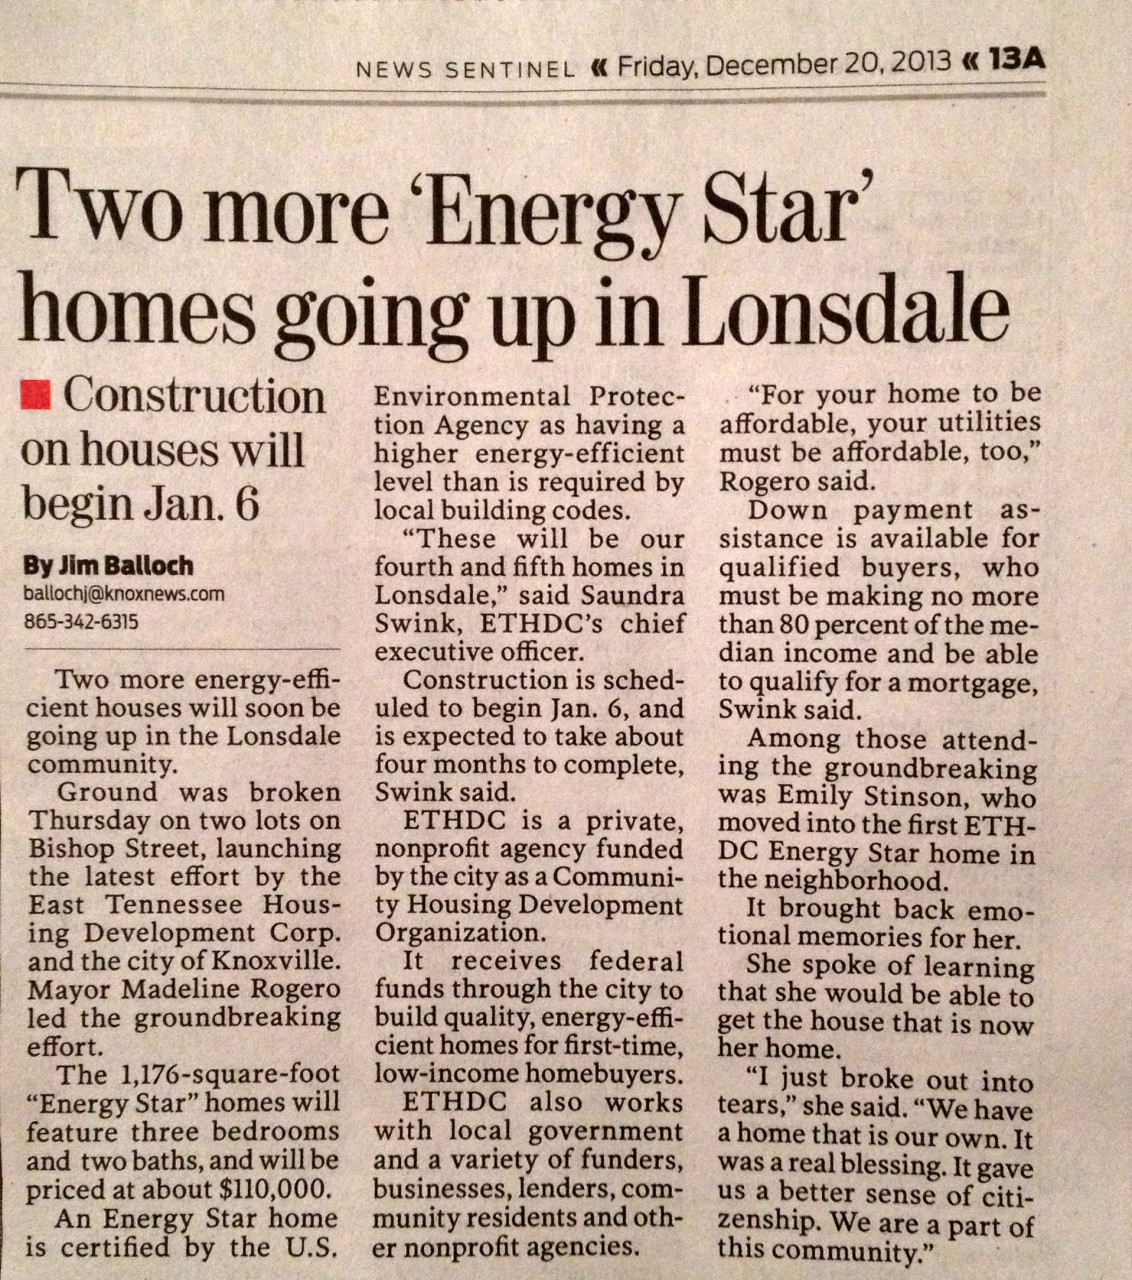 Knoxville News Sentinel article published December 20, 2013